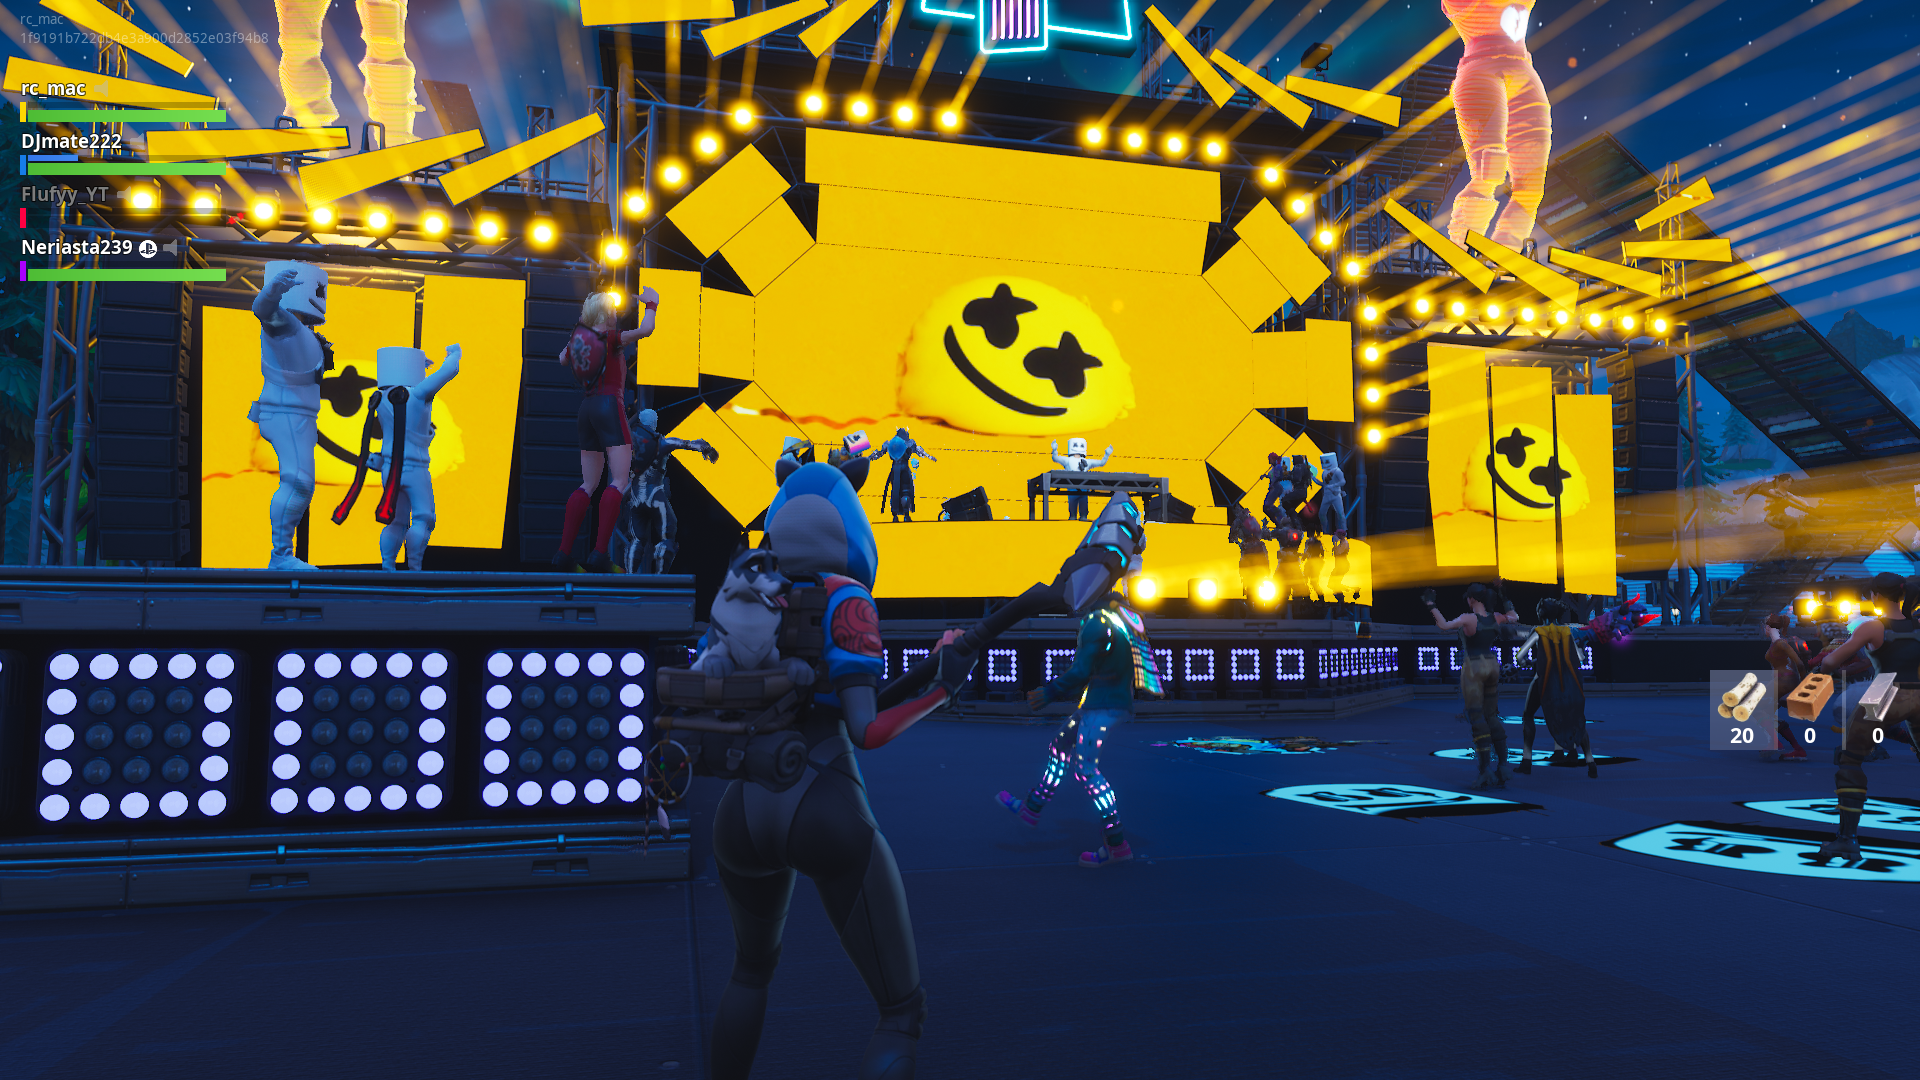 a glowing yellow light appeared on the stage and eventually marshmello blipped in behind his turntables this was anti climactic fortnite has released - fortnite concert